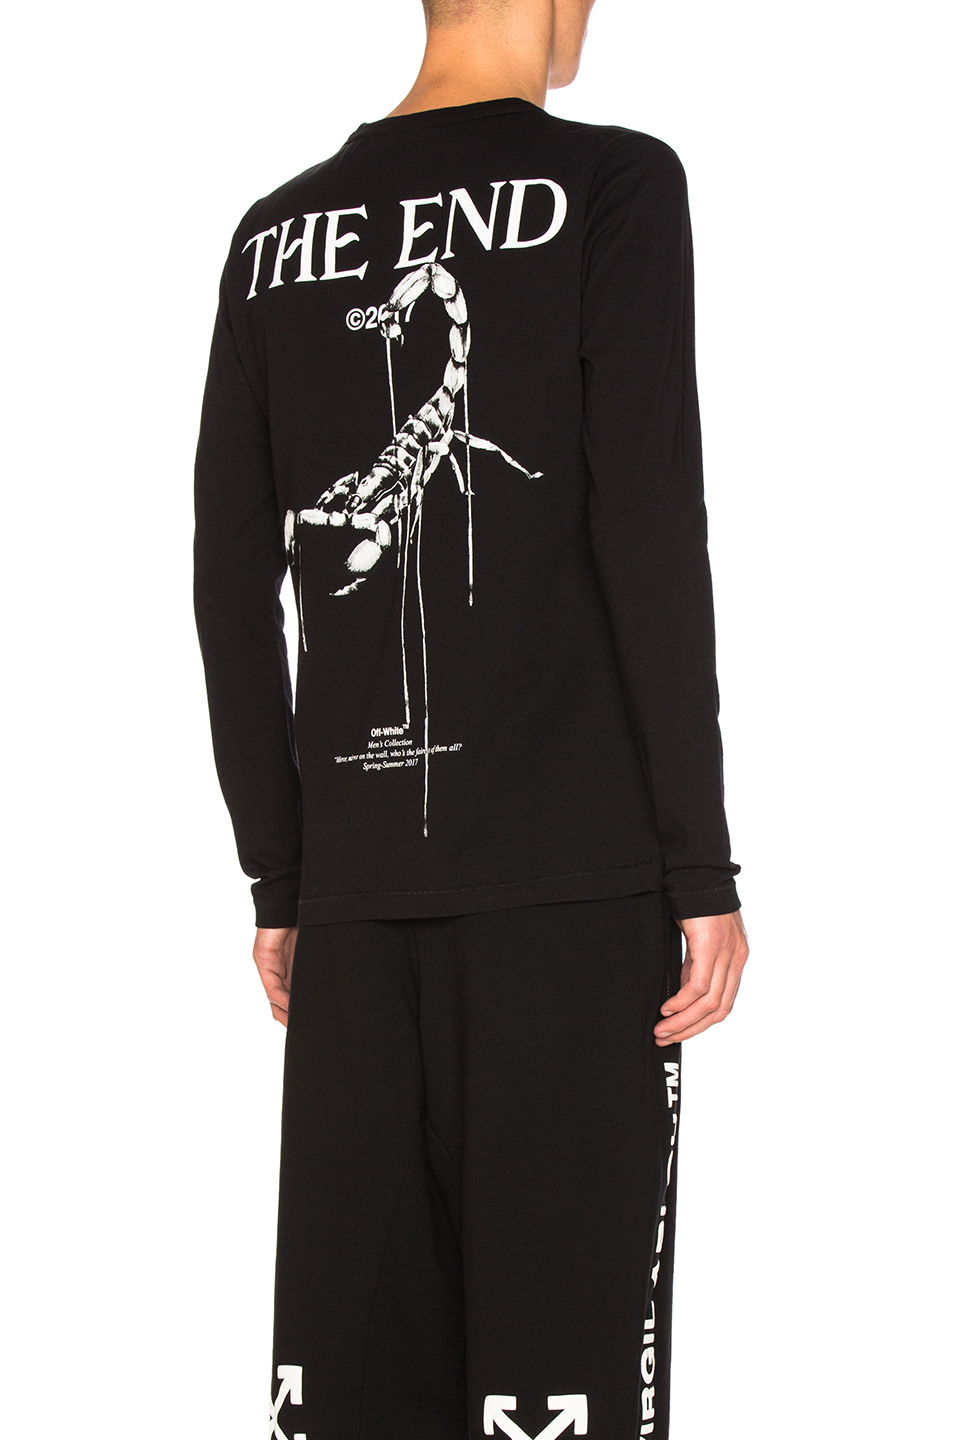 OFF-WHITE Othelo's Scorpion Long Sleeve Tee in Black